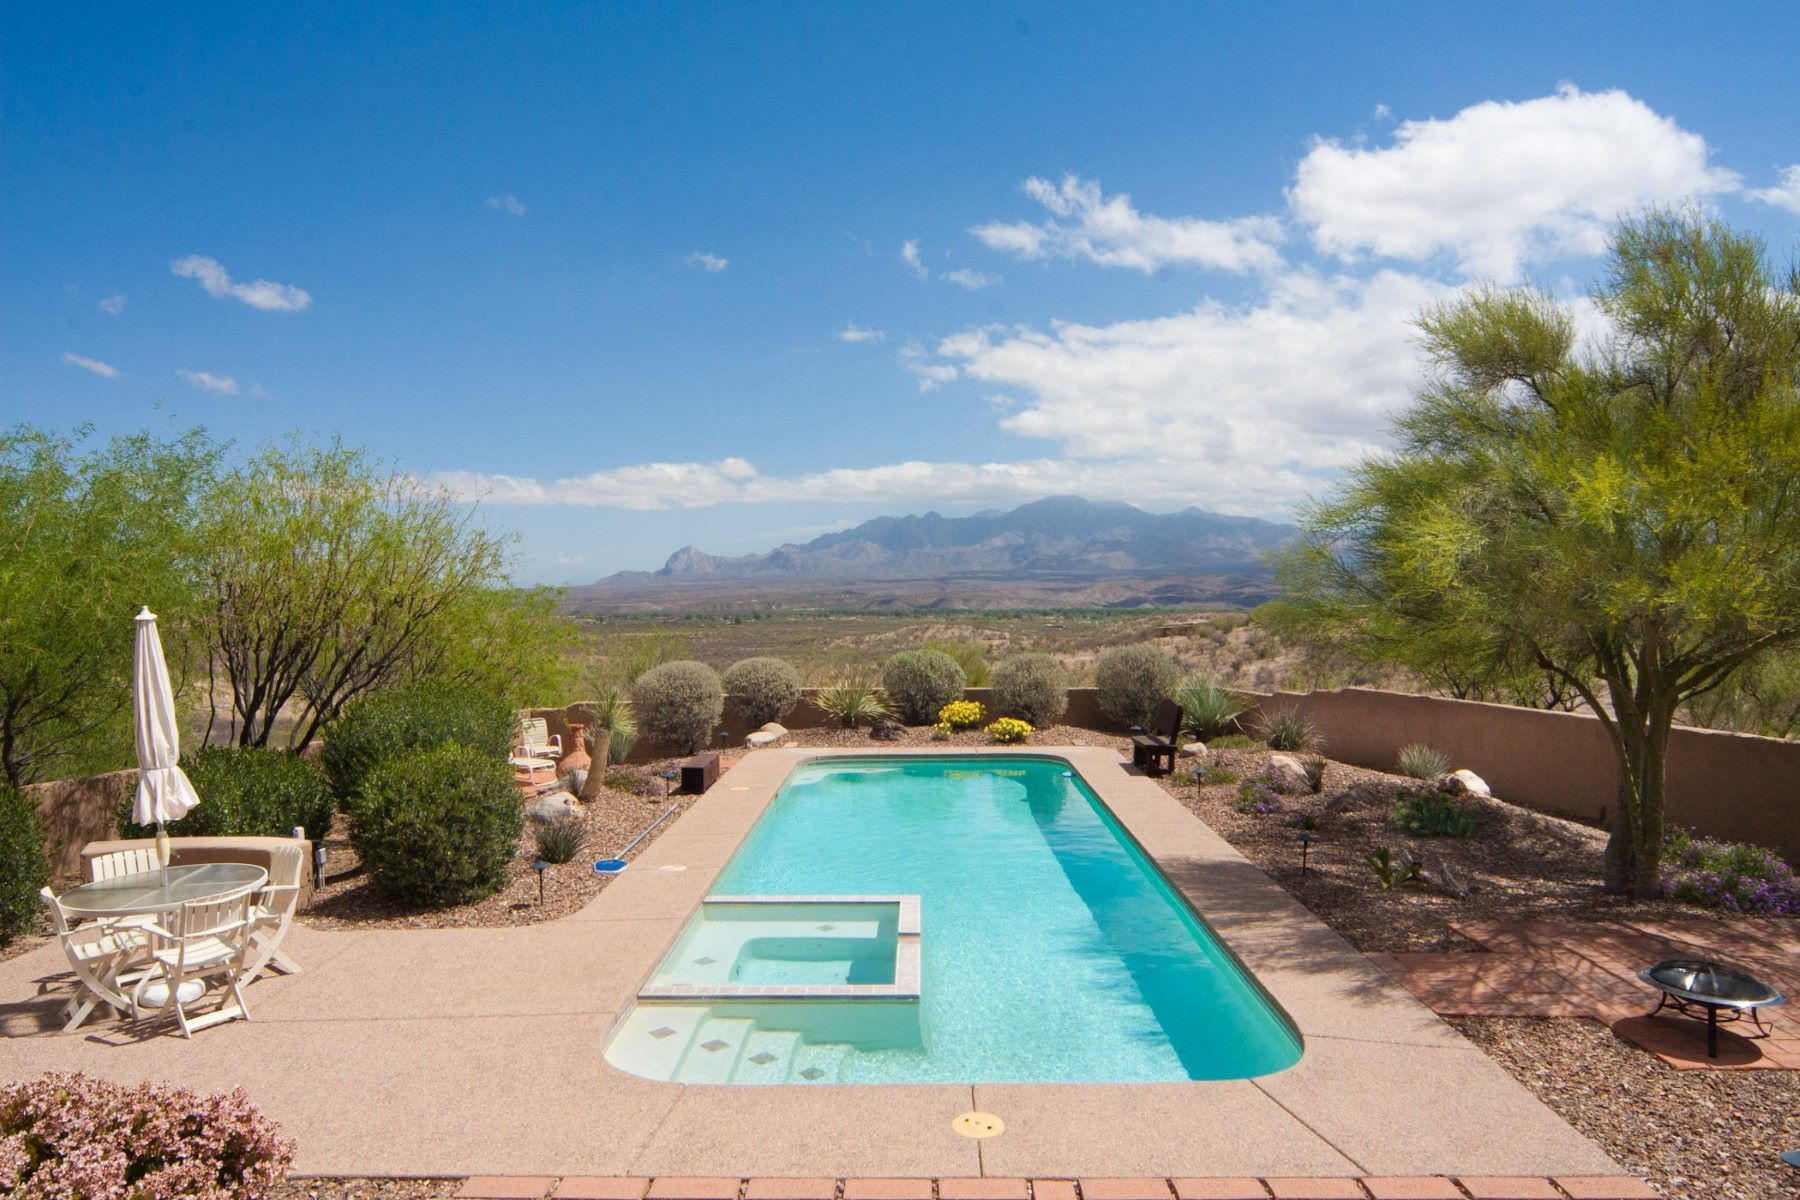 Single Family Home for Sale at Beautiful custom-built home with incredible views 13 Western Saddle Ct Tubac, Arizona, 85646 United States